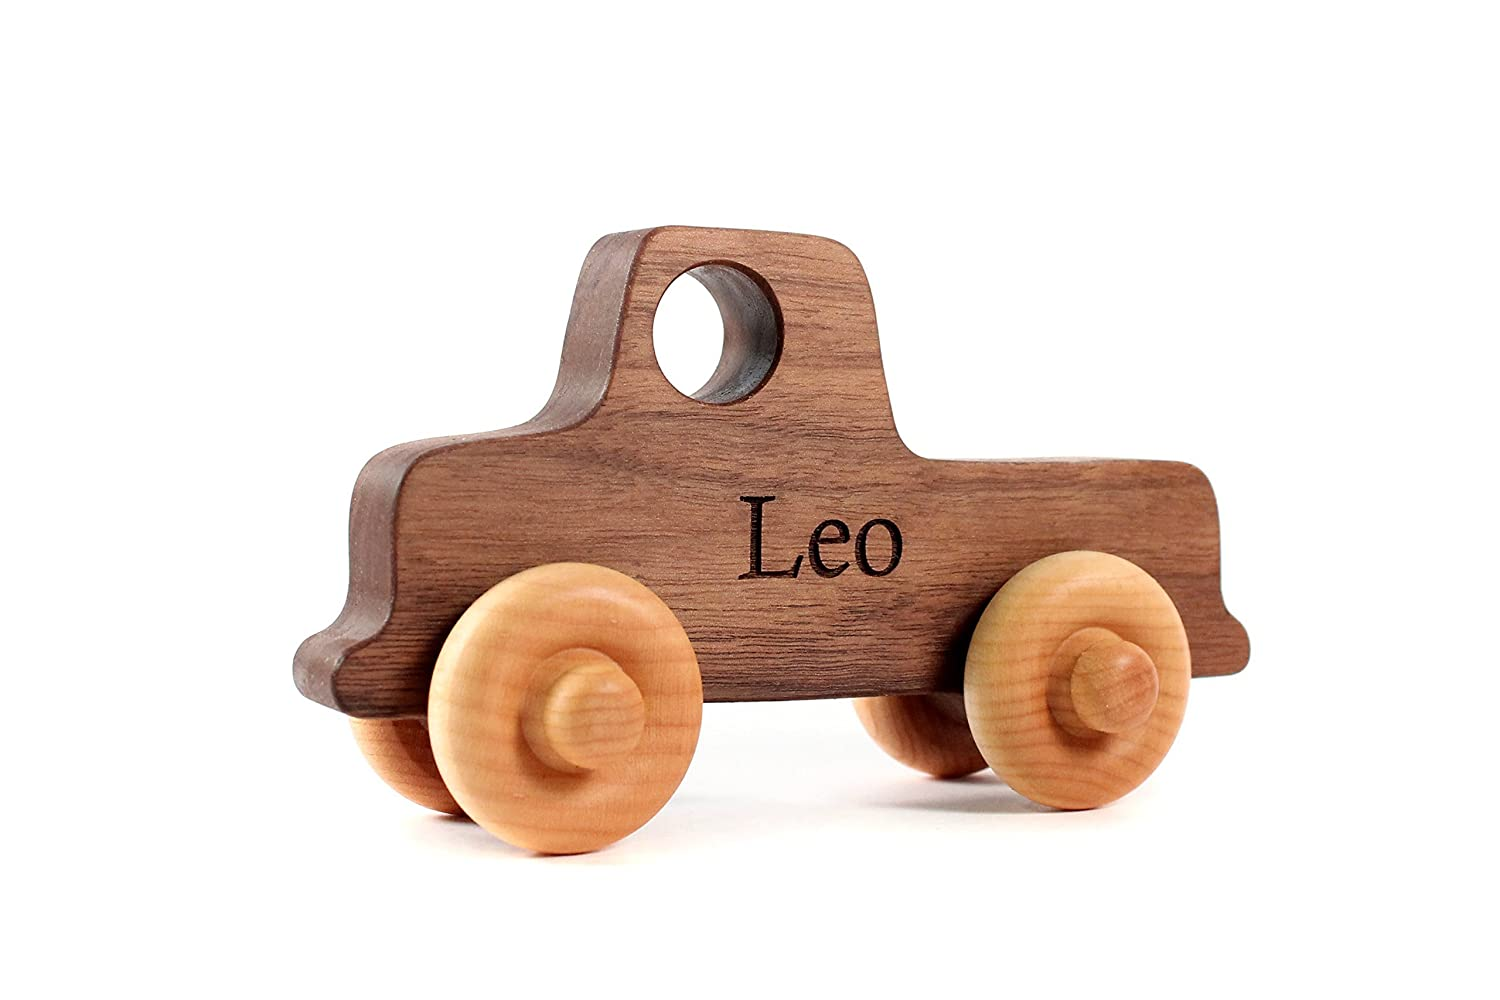 OLD-SCHOOL TRUCK - a natural and eco-friendly wooden toy car made with sustainable hardwood - toddler or preschooler toy